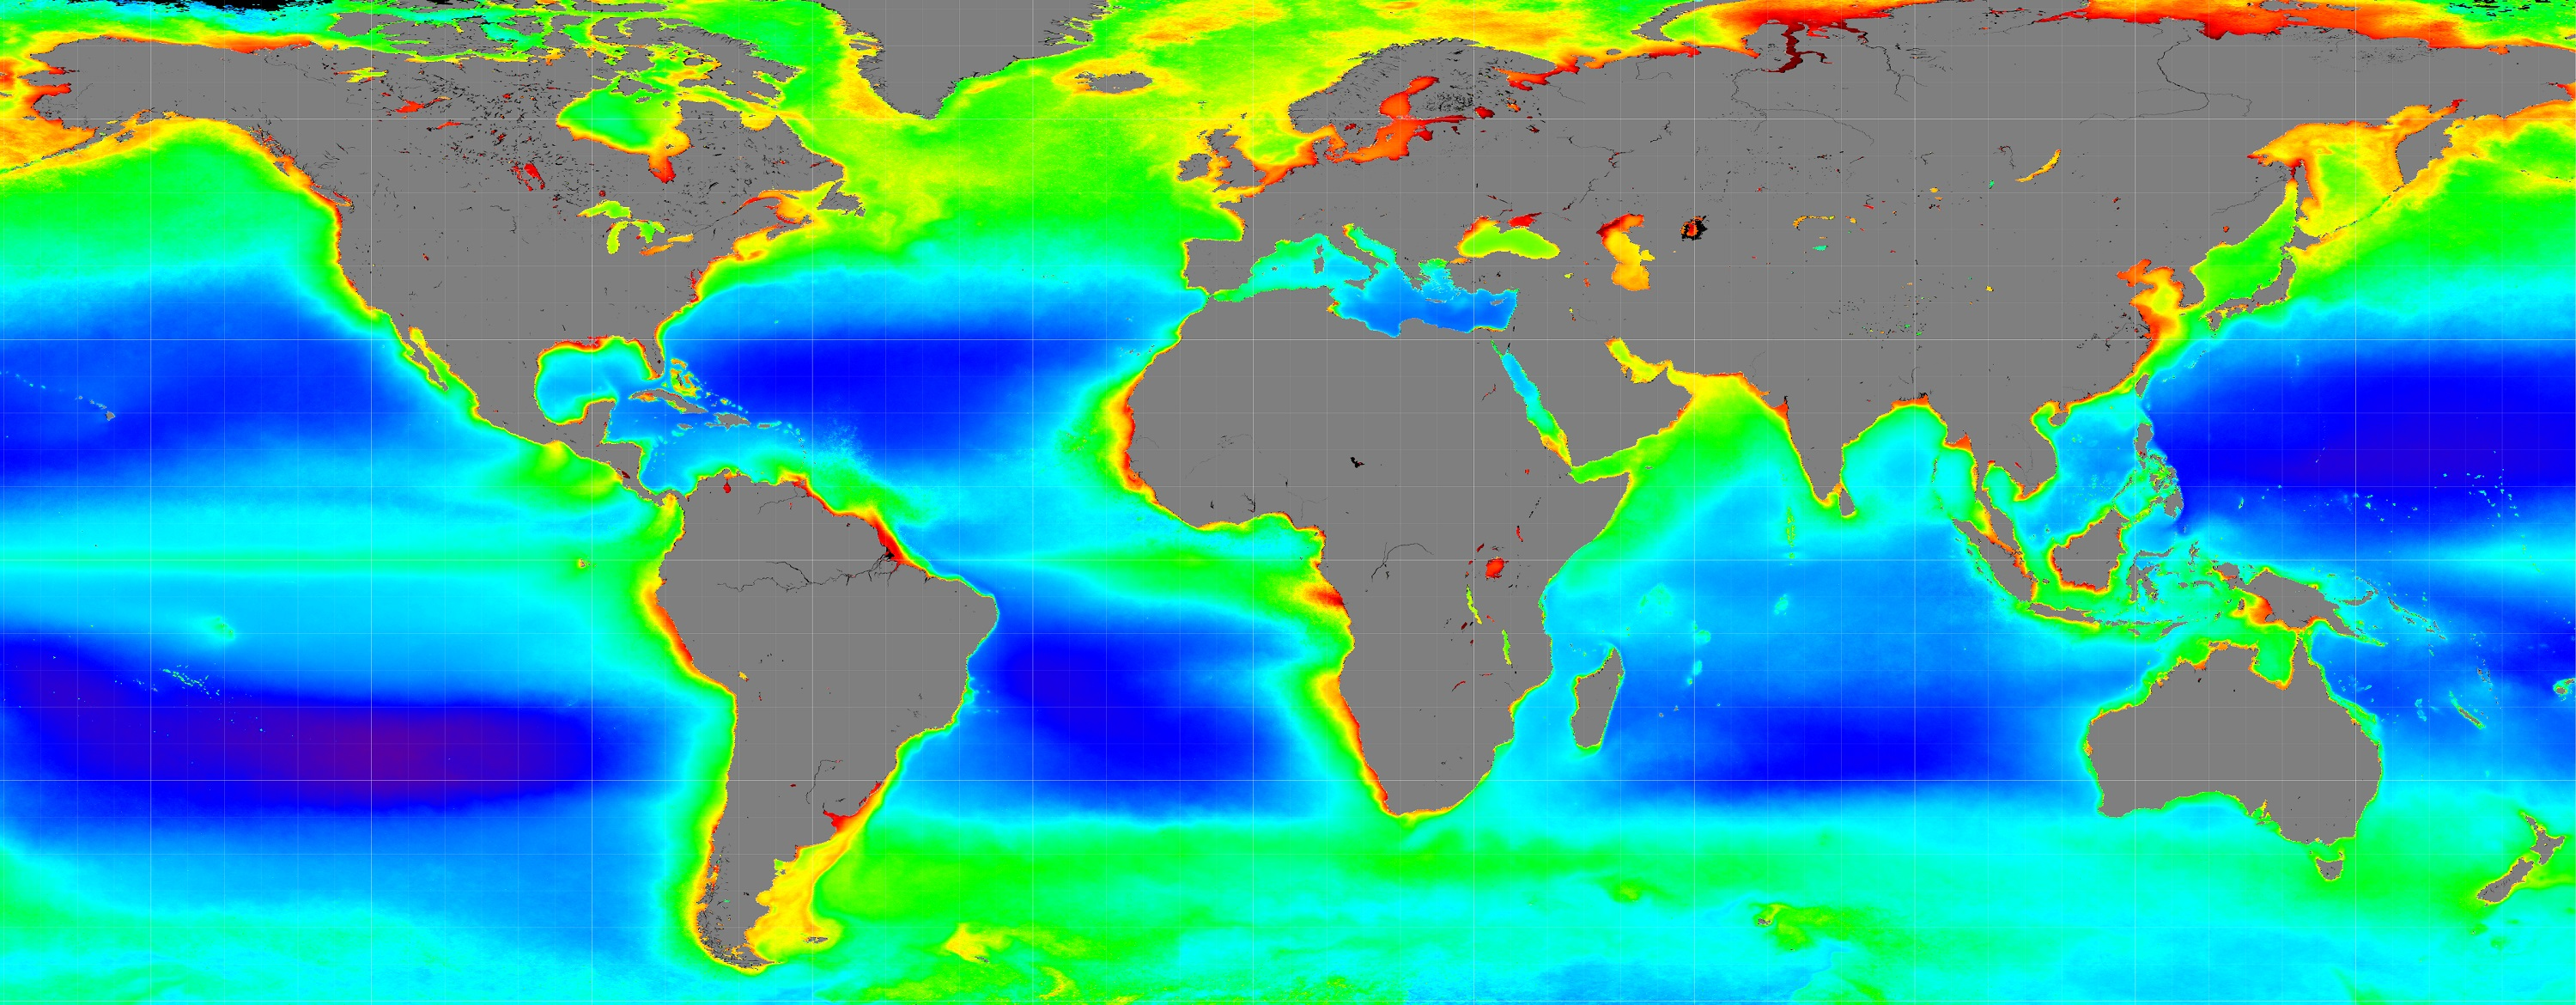 NASA Mission To Study Ocean Color Airborne Particles And Clouds - World map online satellite 2015